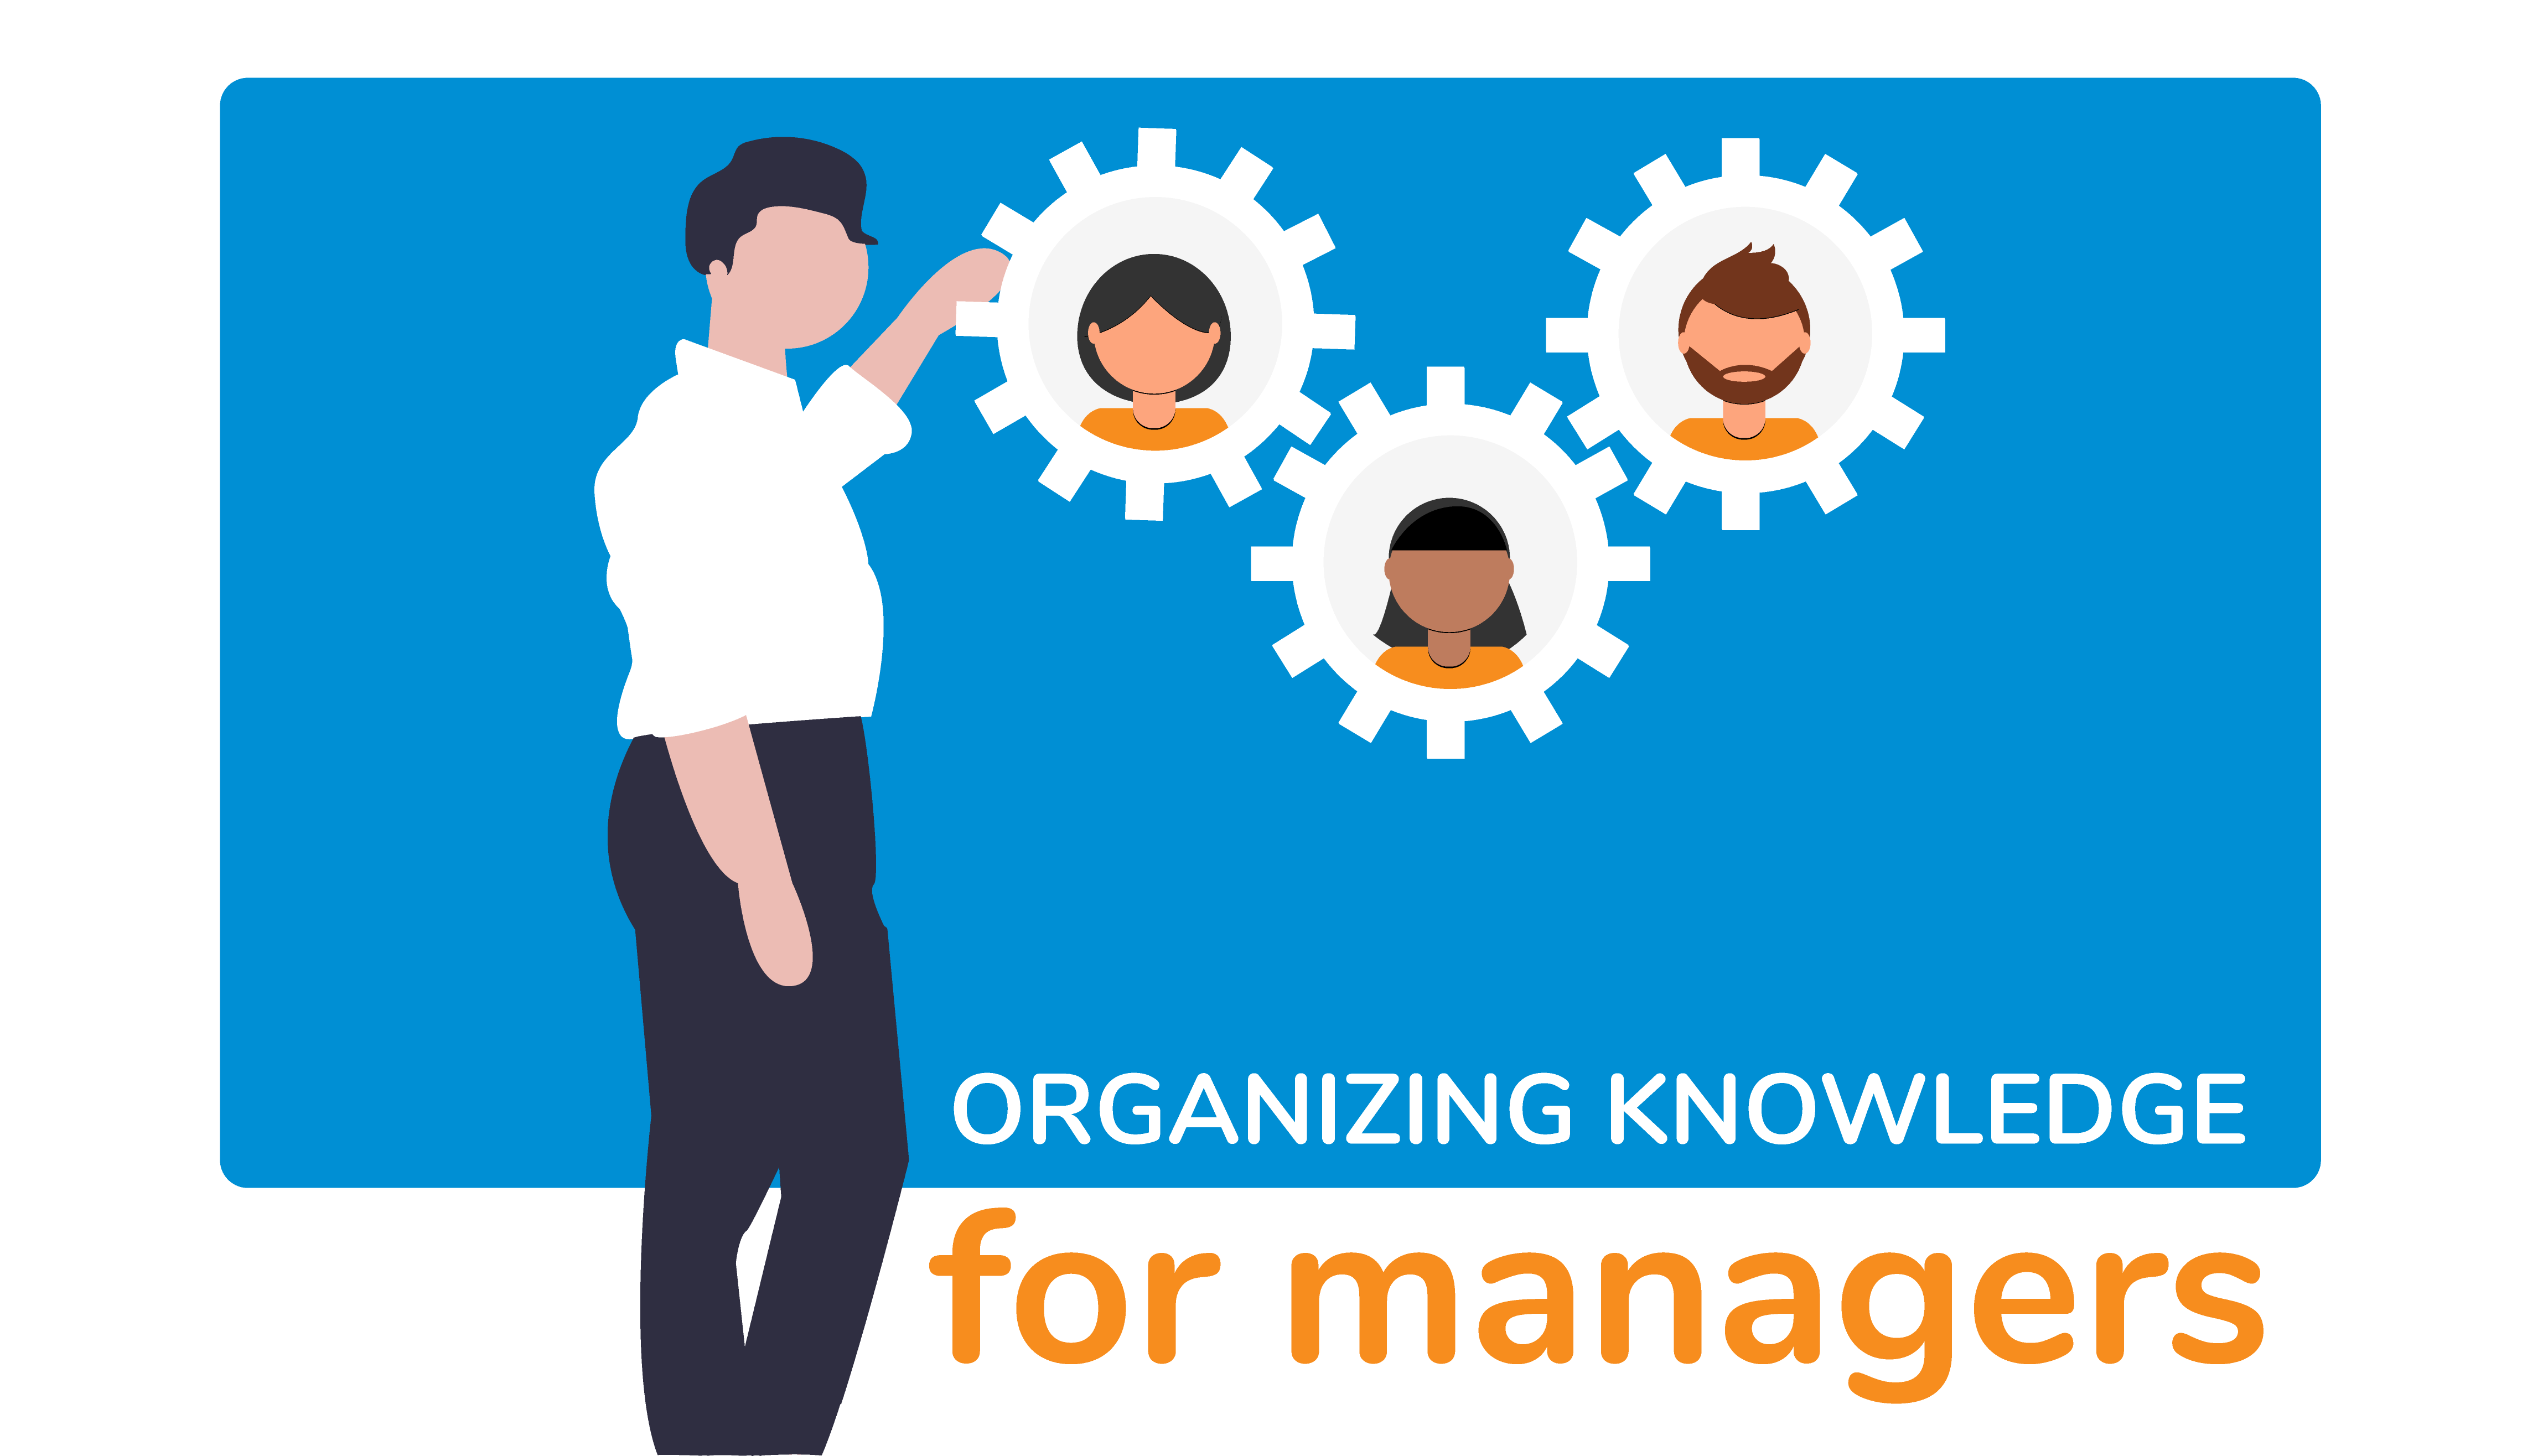 XWiki-Managers-KnowledgeManagement.png